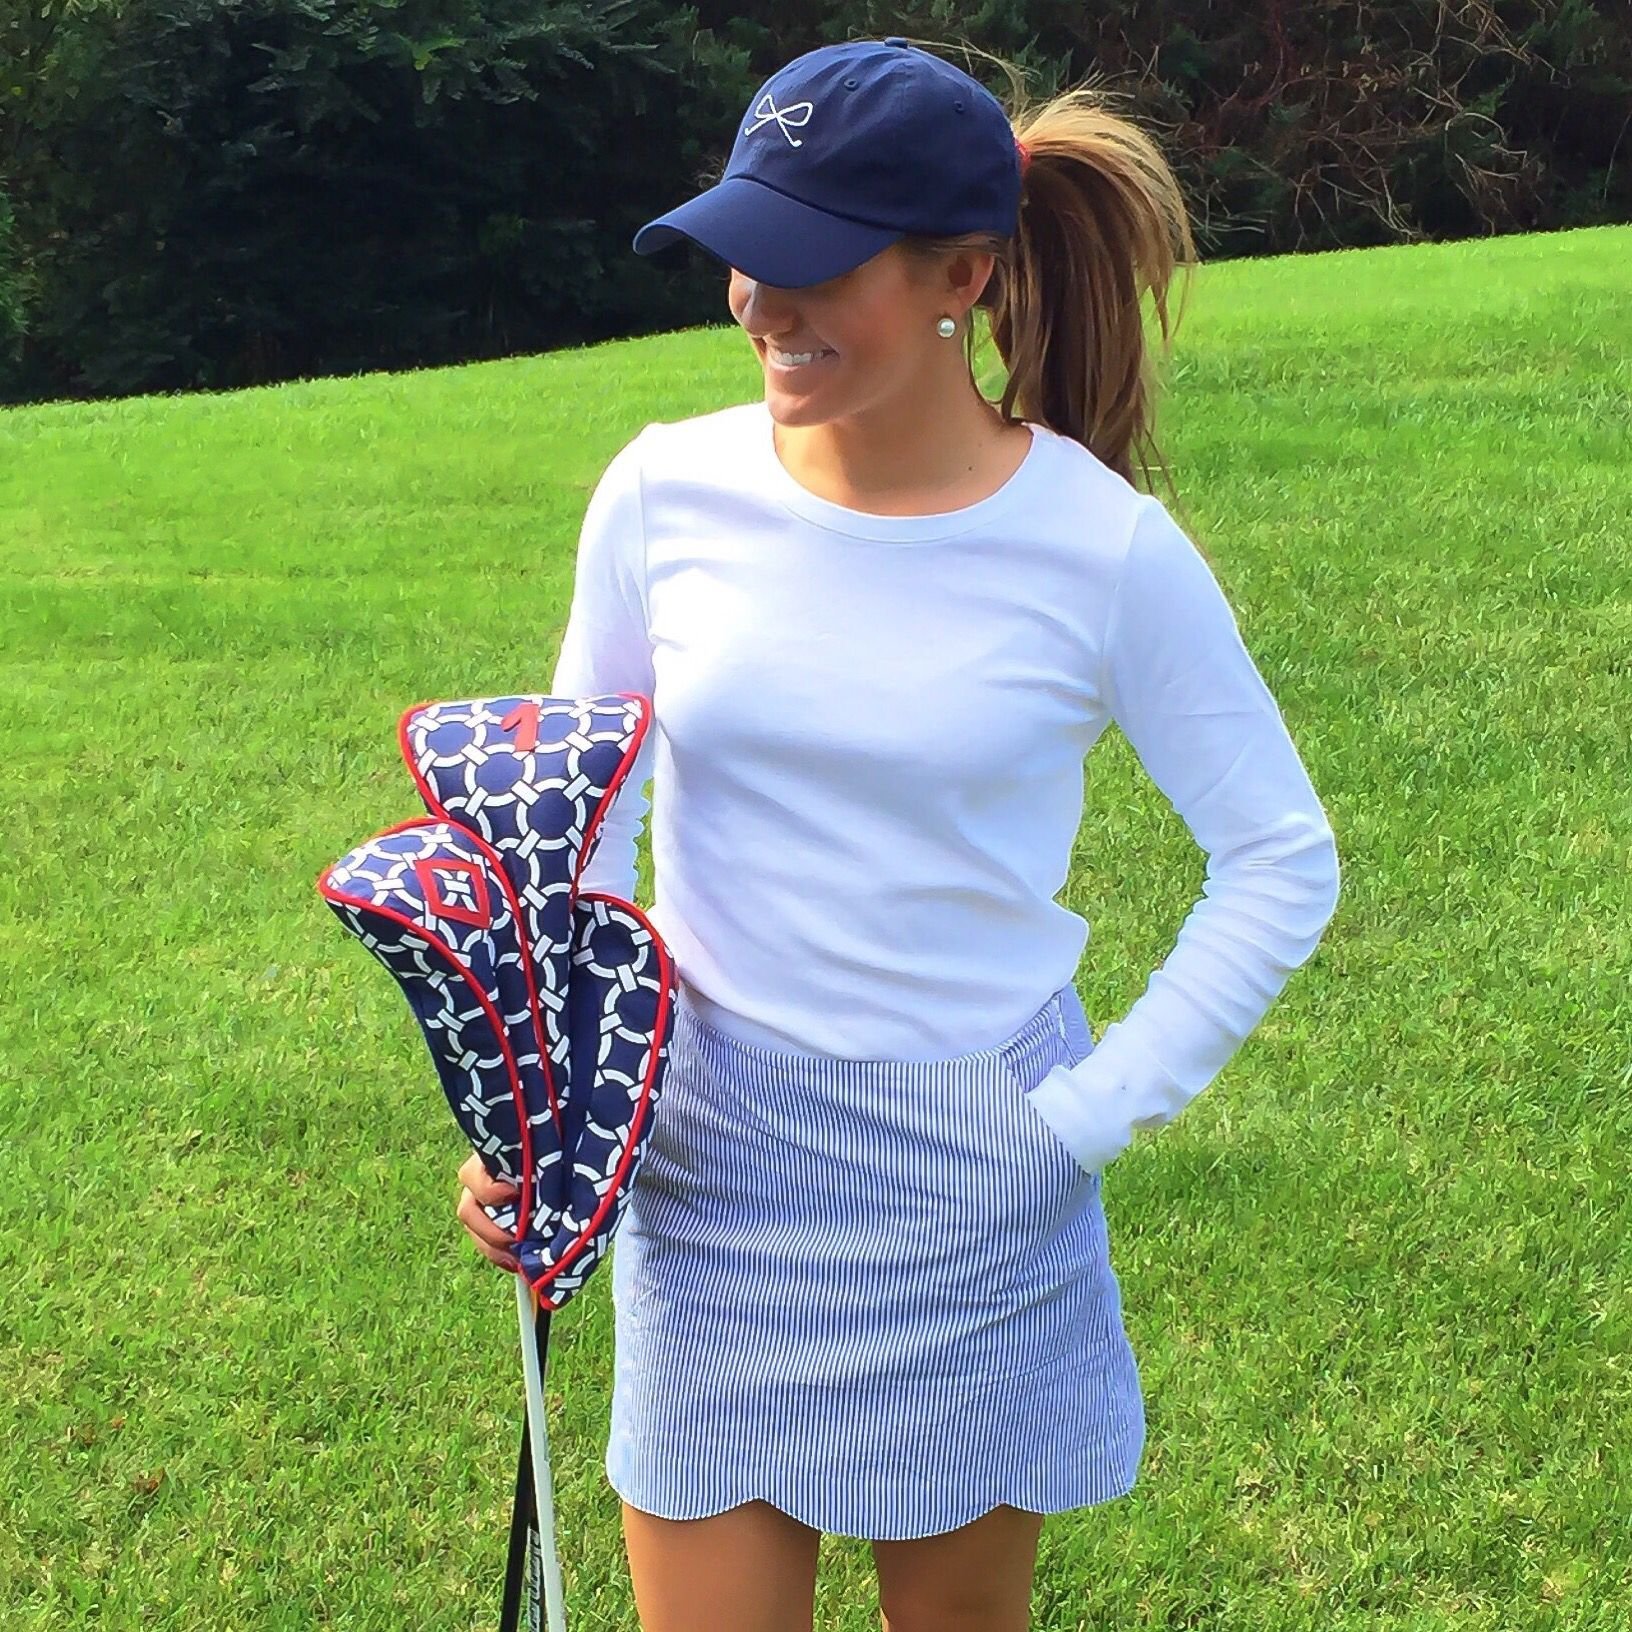 Ame u0026 Lulu golf headcovers in Cru. Paired with the Navy Seersucker Skort! ufe0f ufe0f | Products We Love ...